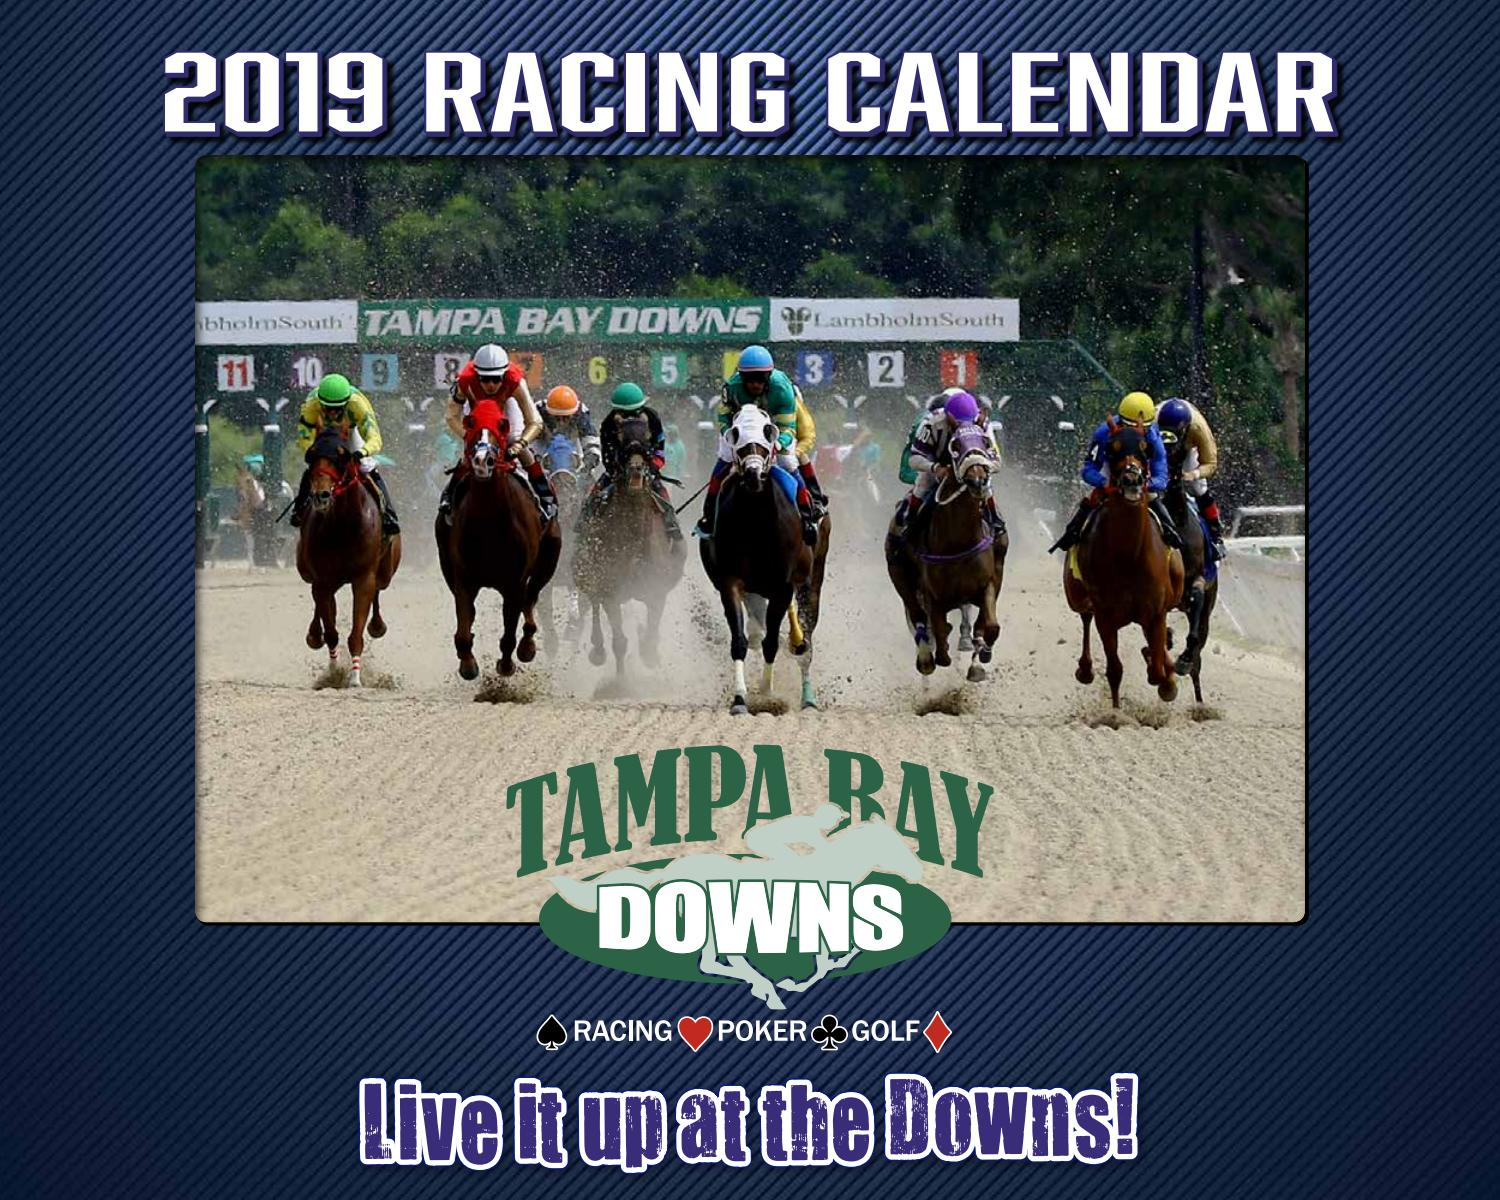 Tampa Bay Downs 2019 Race Calendarstrops Marketing - Issuu Pertaining To Tampa Bay Downs Schedule 2020